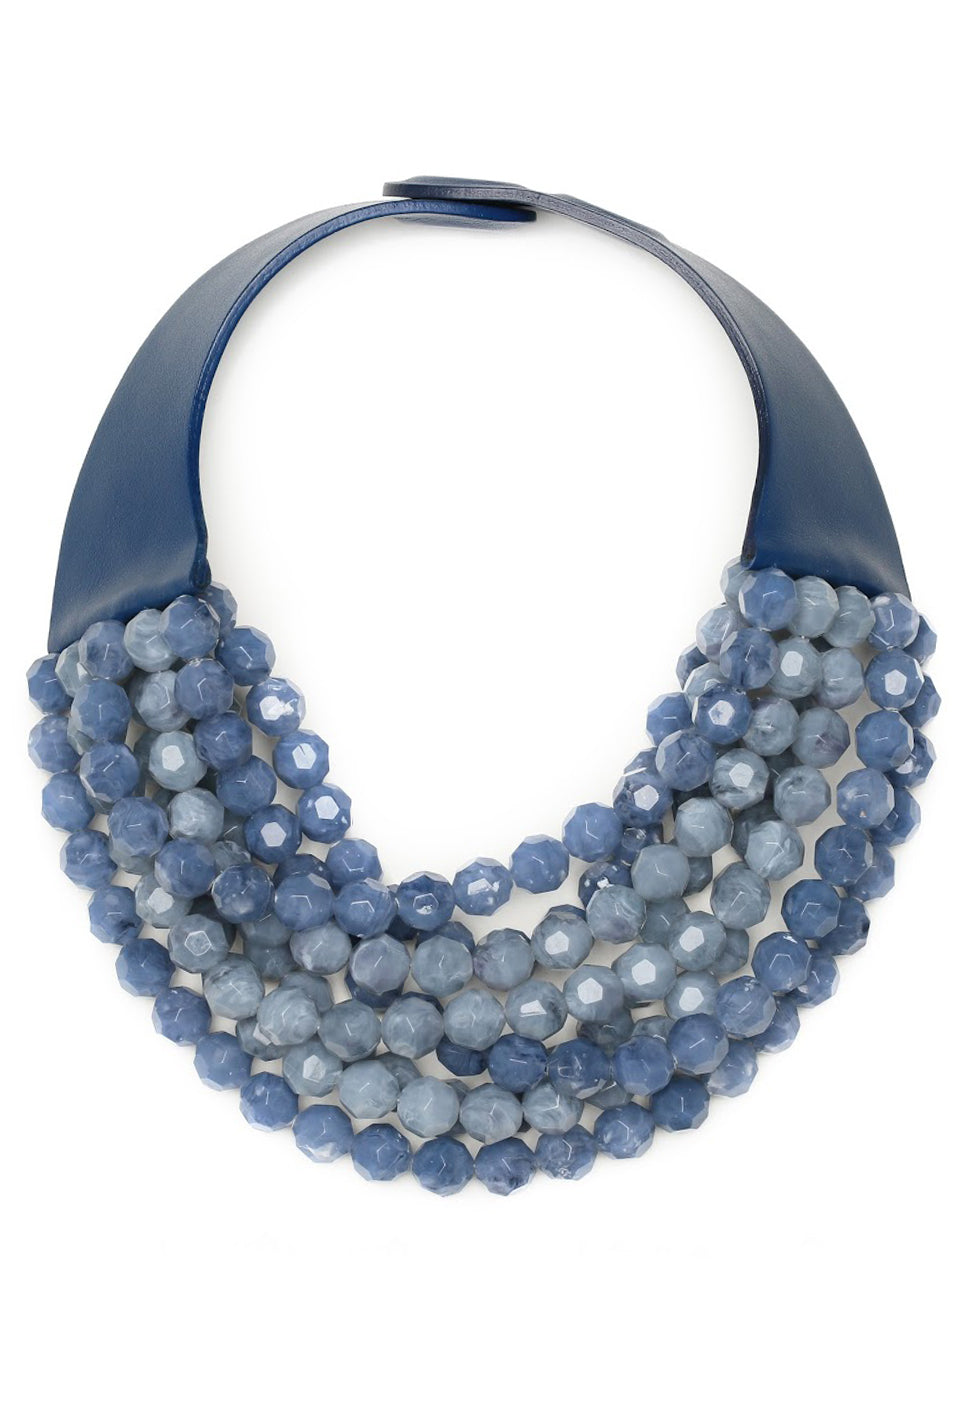 Two Toned Bella Necklace - Cornflower